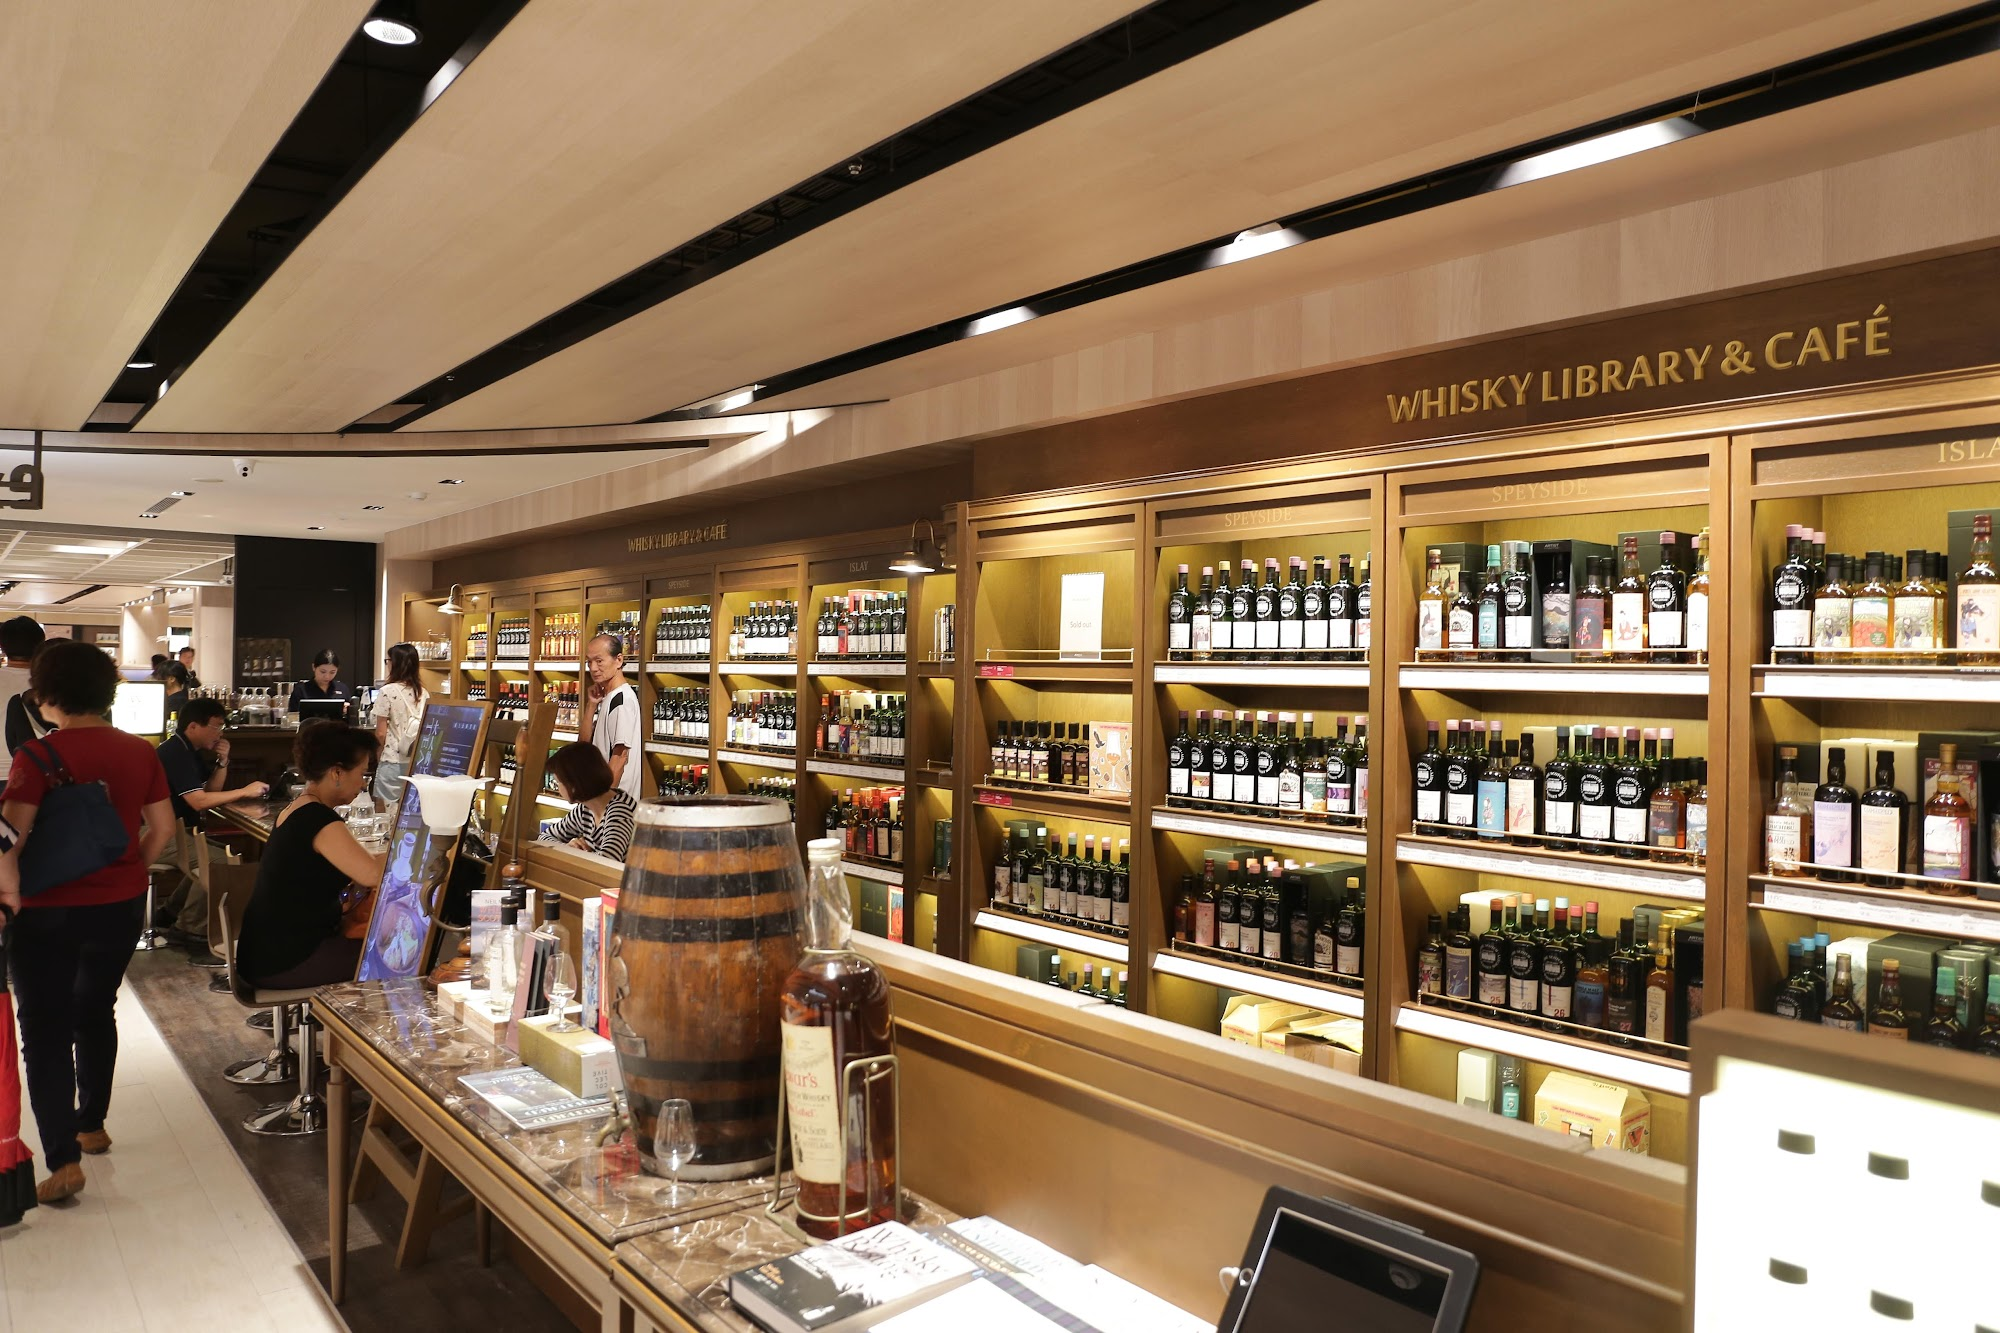 whisky library,就在誠品書店旁